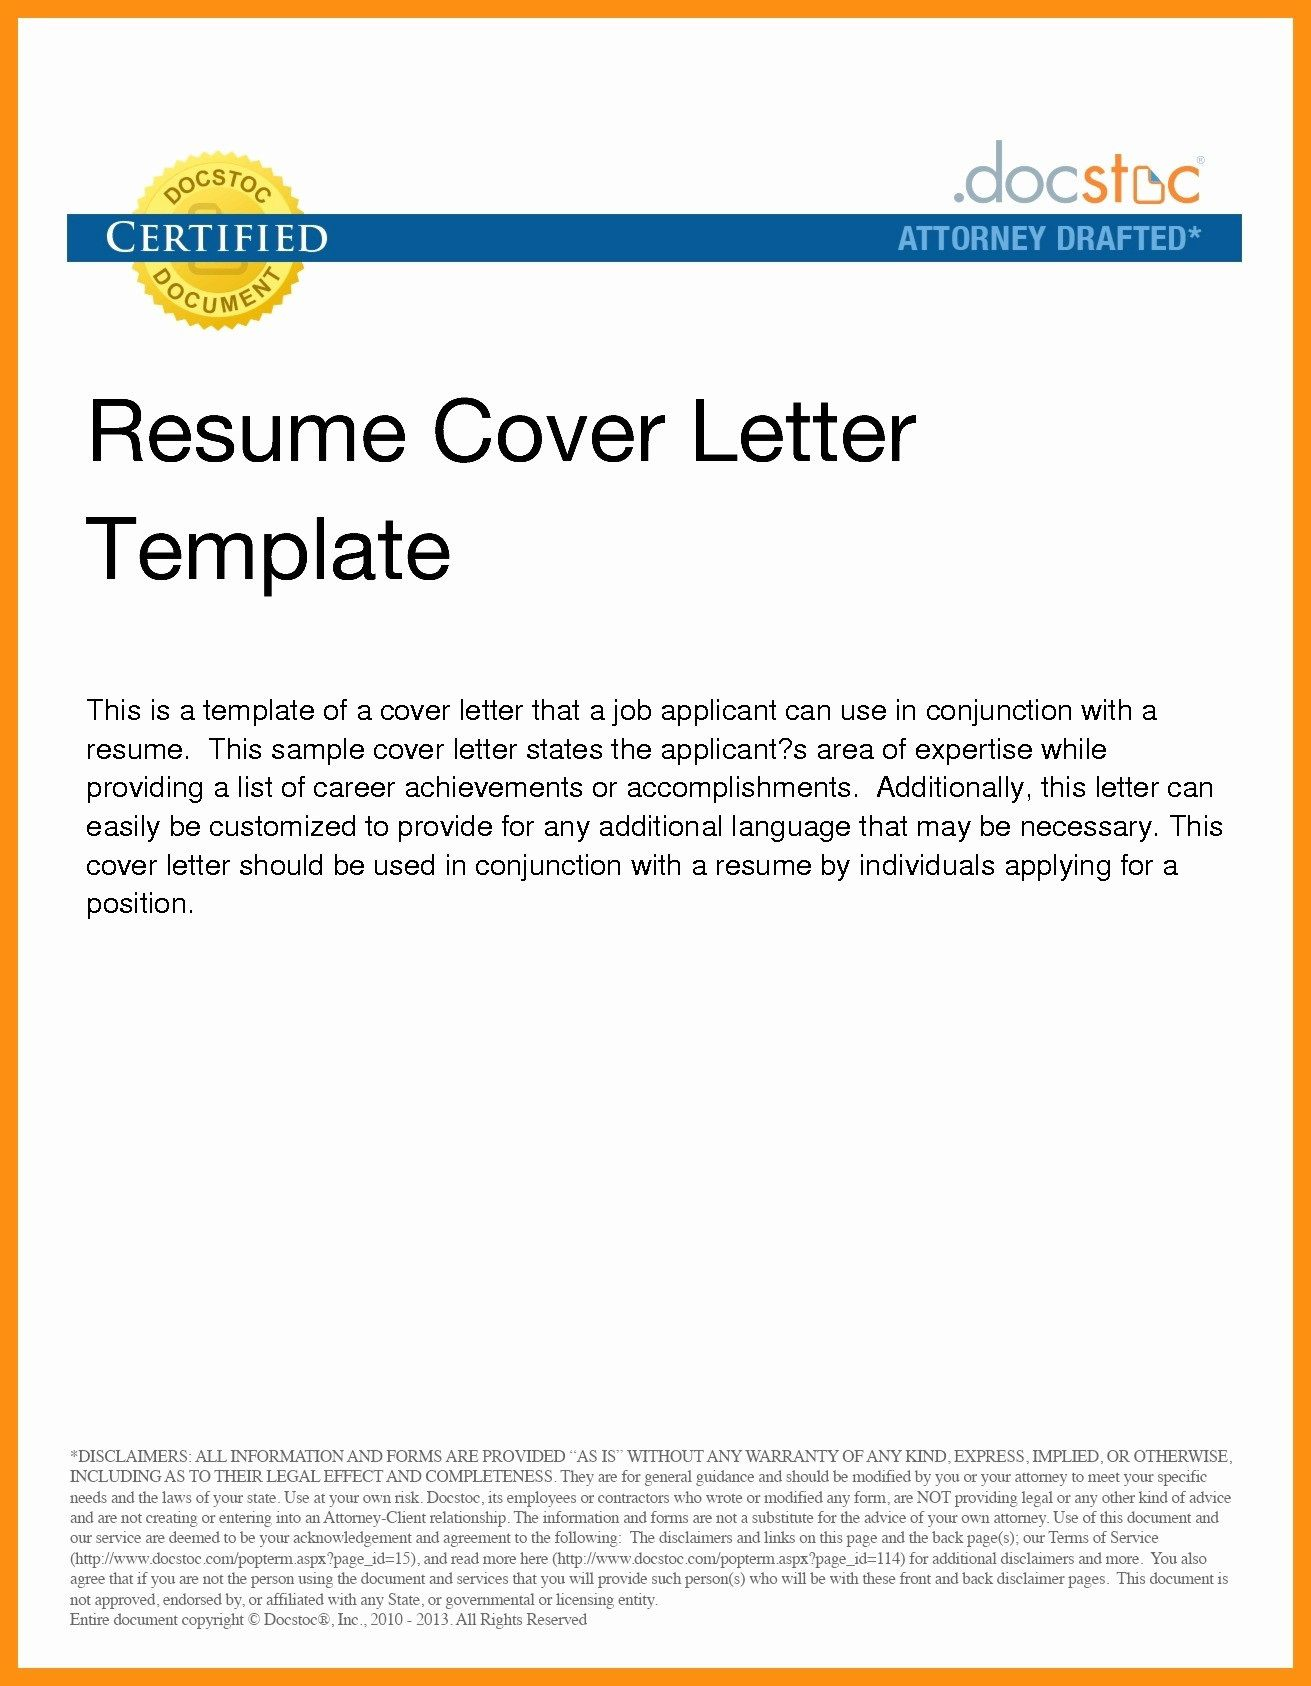 email resume cover letter samples addictionary sample submitting fascinating design Resume Sample Email Submitting Resume